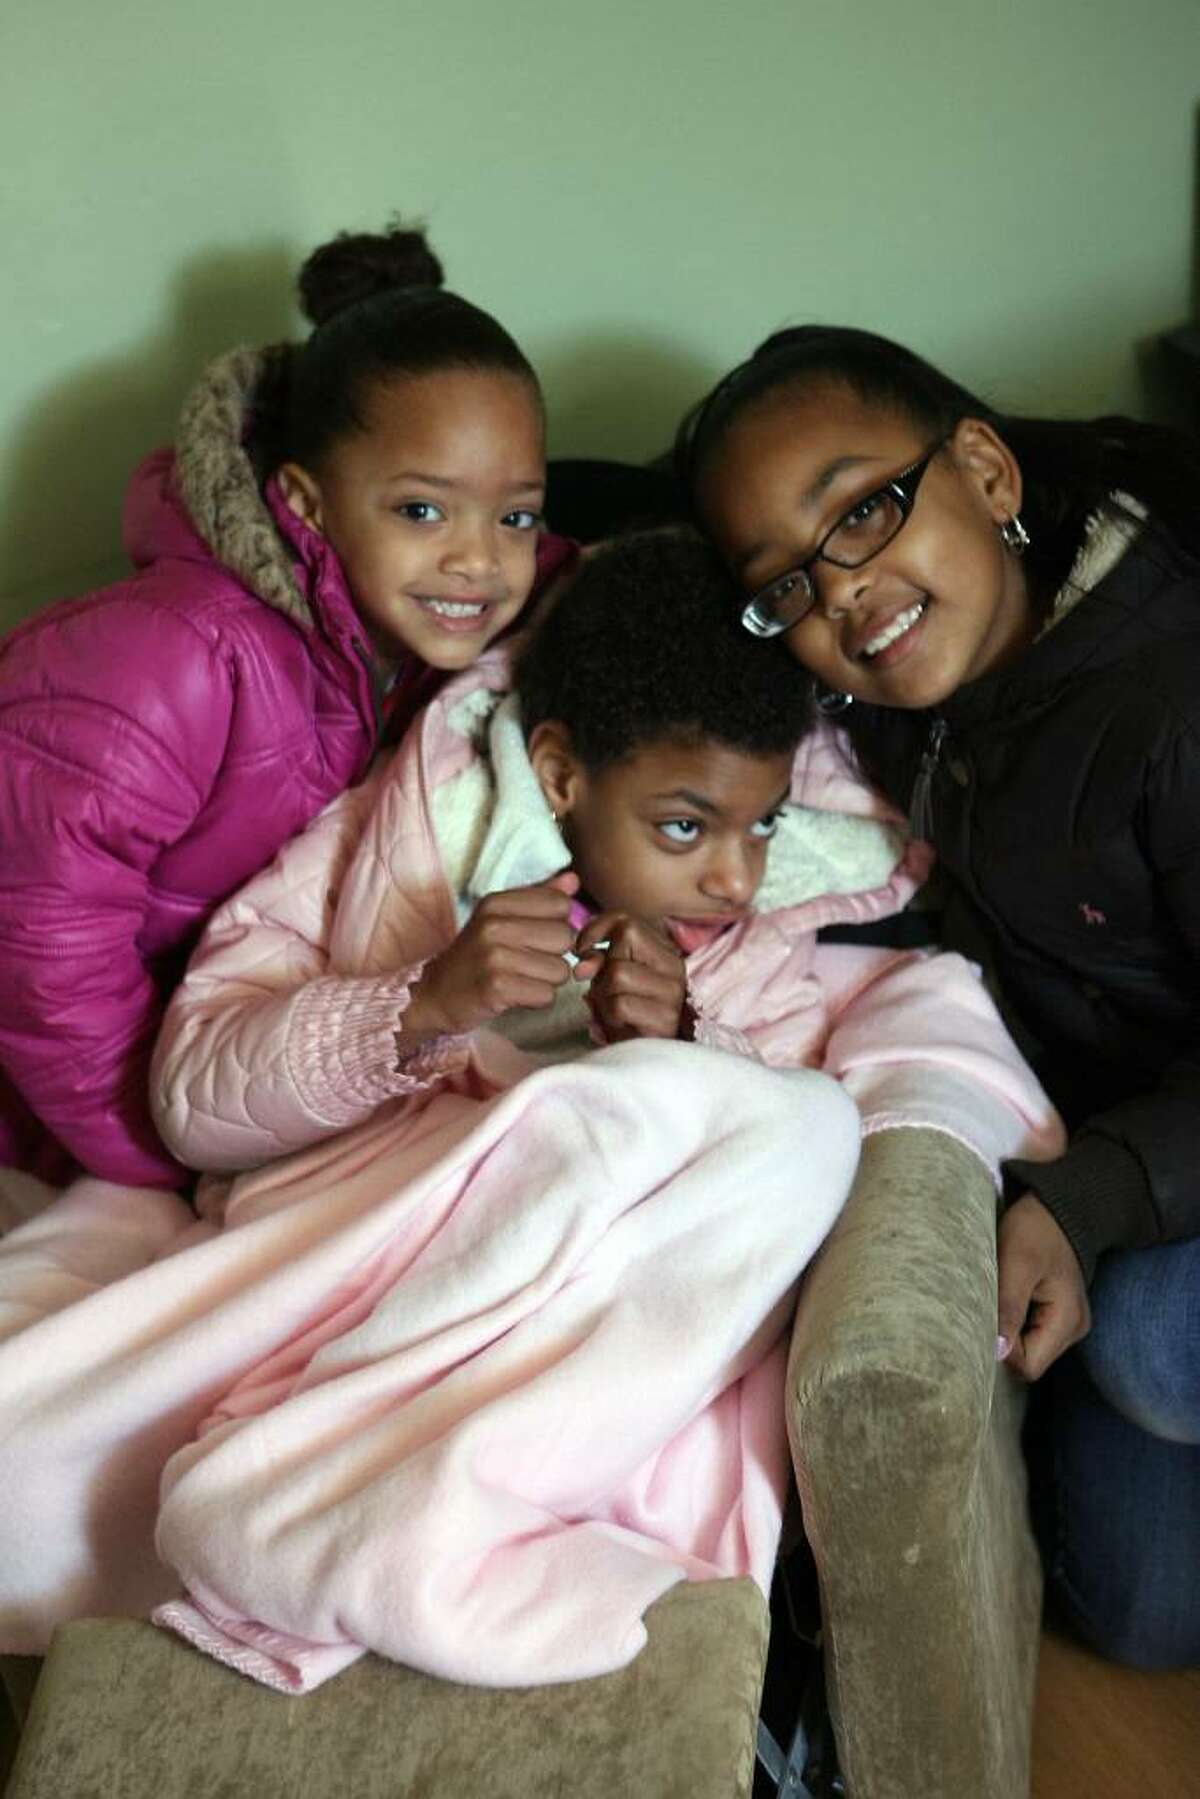 Davina Martins ,6 , center, poses with her sisters, Niki Martins,4 left, and Issa Dagraca in her Bridgeport home. Dave Adams of Design Builders and members of the Home Builders and Remodelers Association of Fairfield County Inc. partnered with St. Vincents Special Needs Services of Trumbull to build a ramp for Davina, who has cerebral palsy. Davina was not able to use a wheelchair at her home until the builders put in the ramp on Saturday, Nov. 7, 2009.